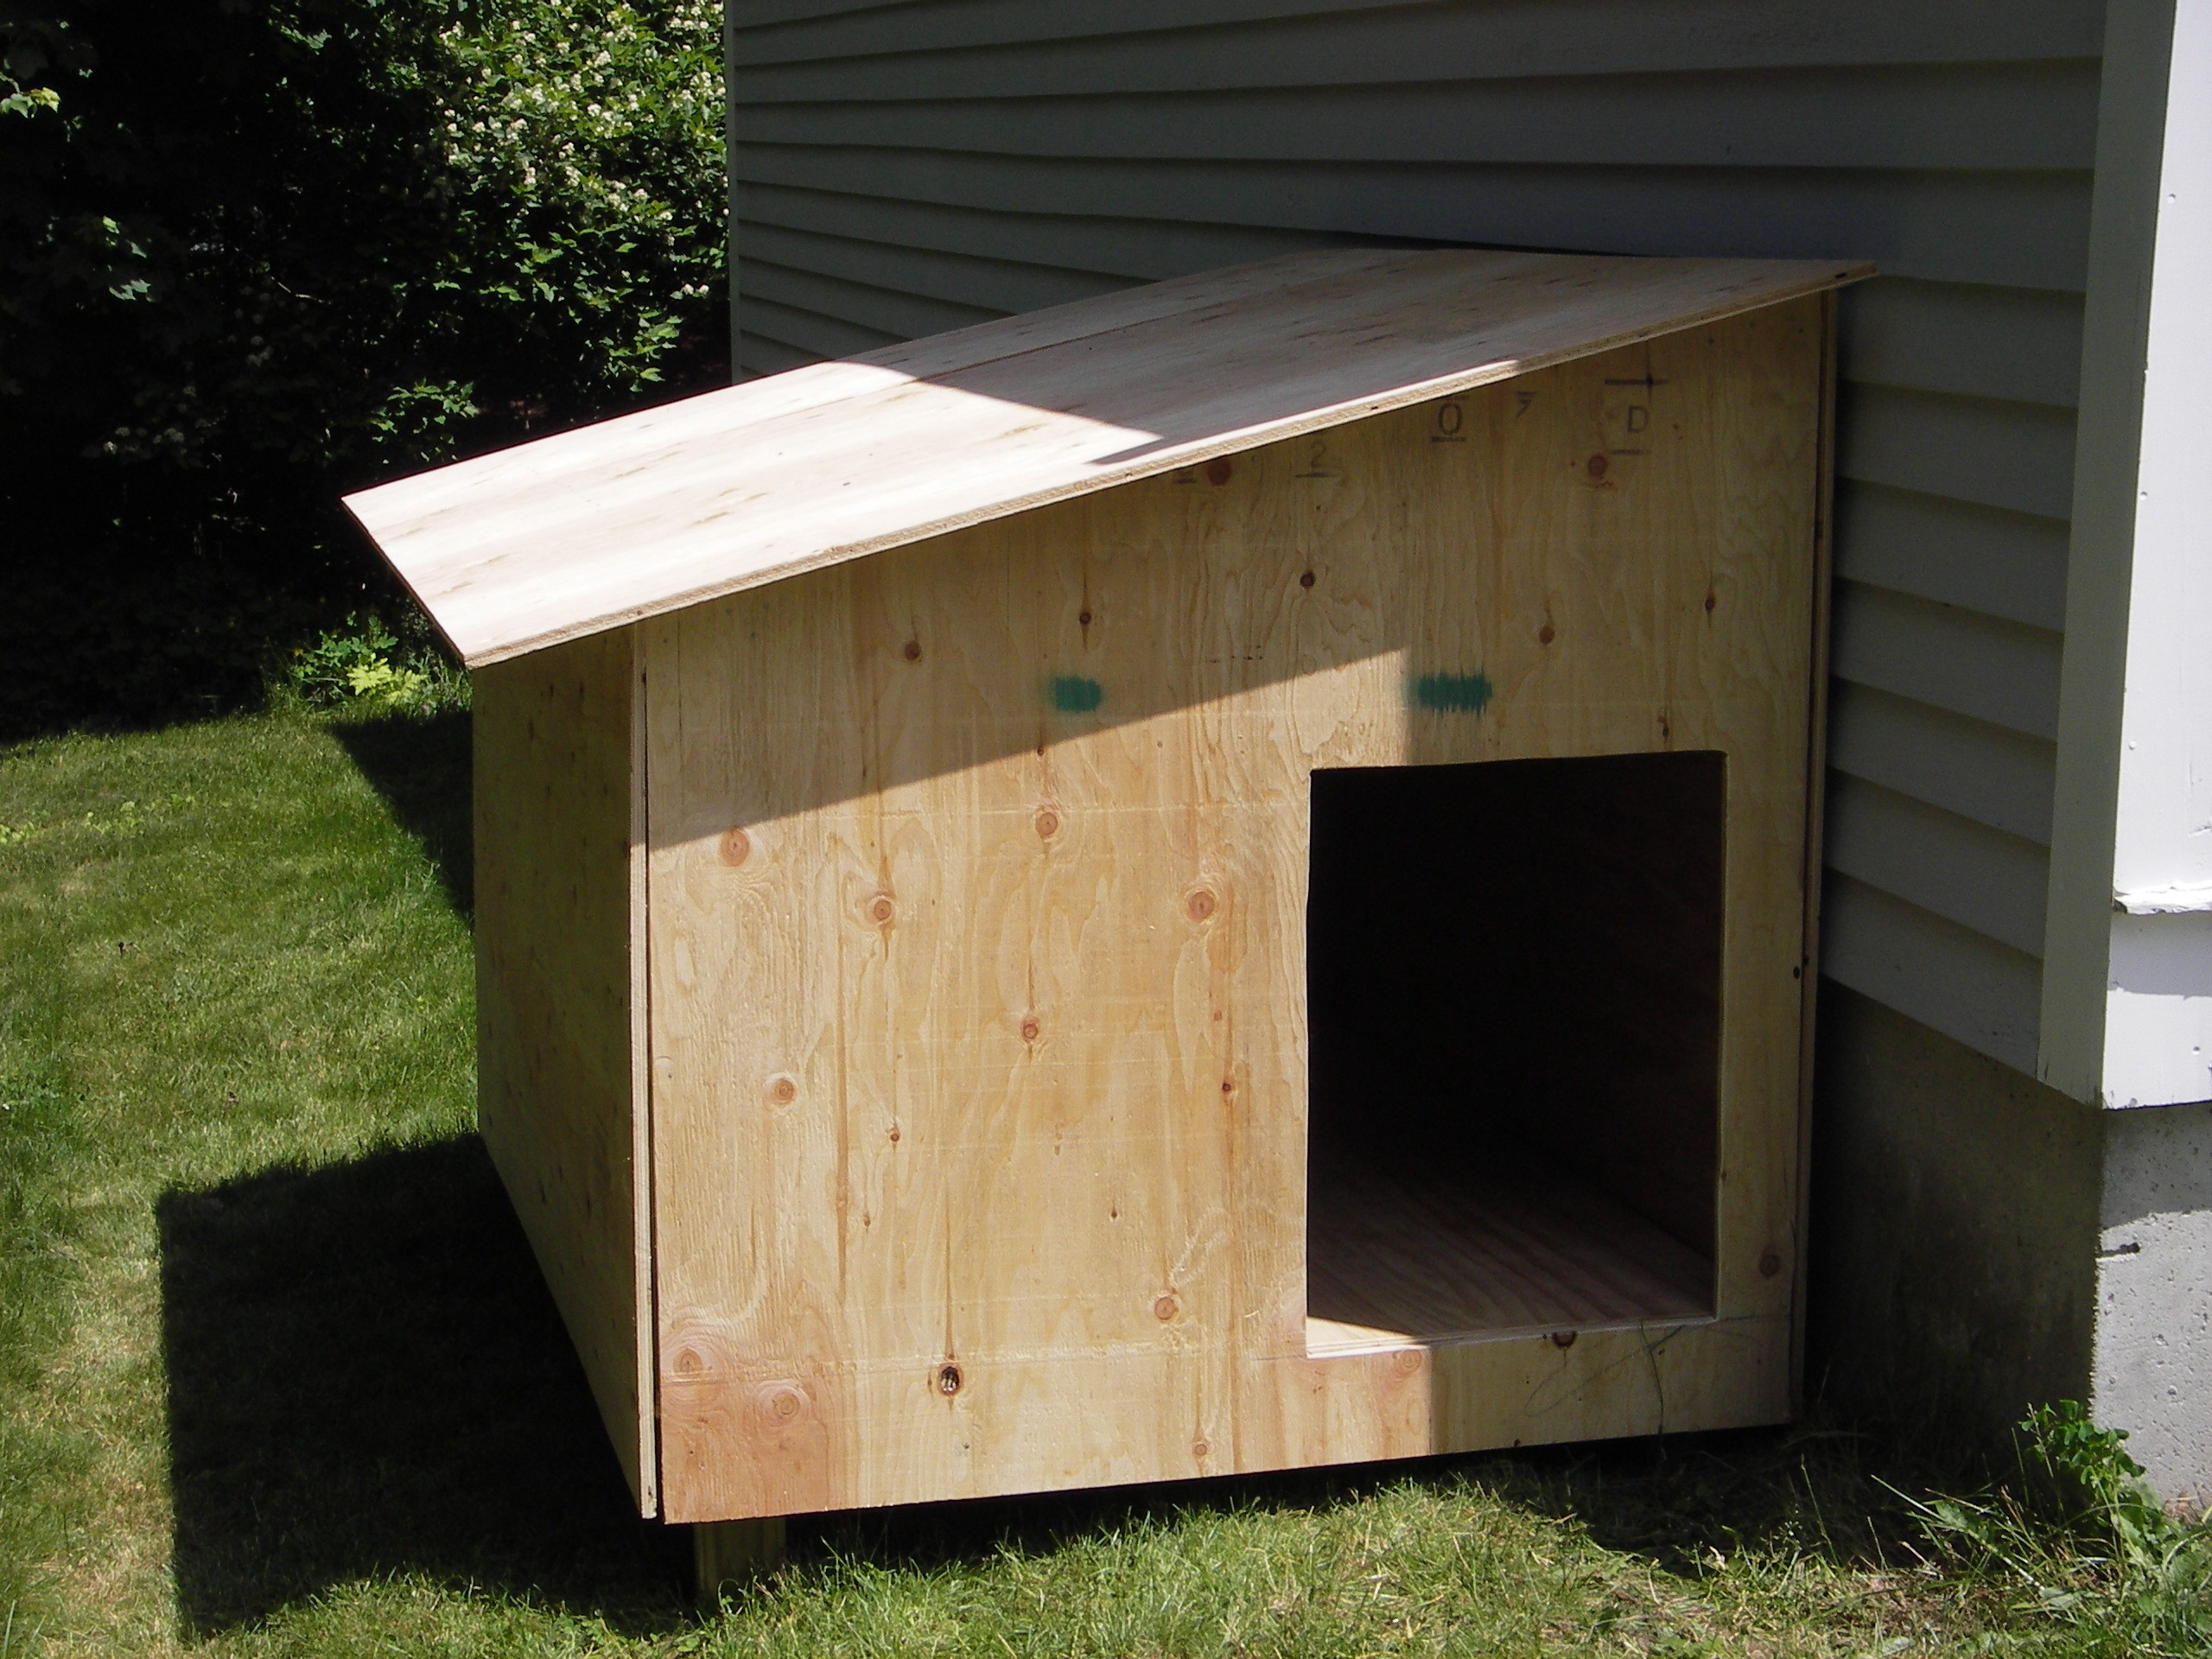 Best ideas about DIY Dog House Plans . Save or Pin Claypool Dog House Now.